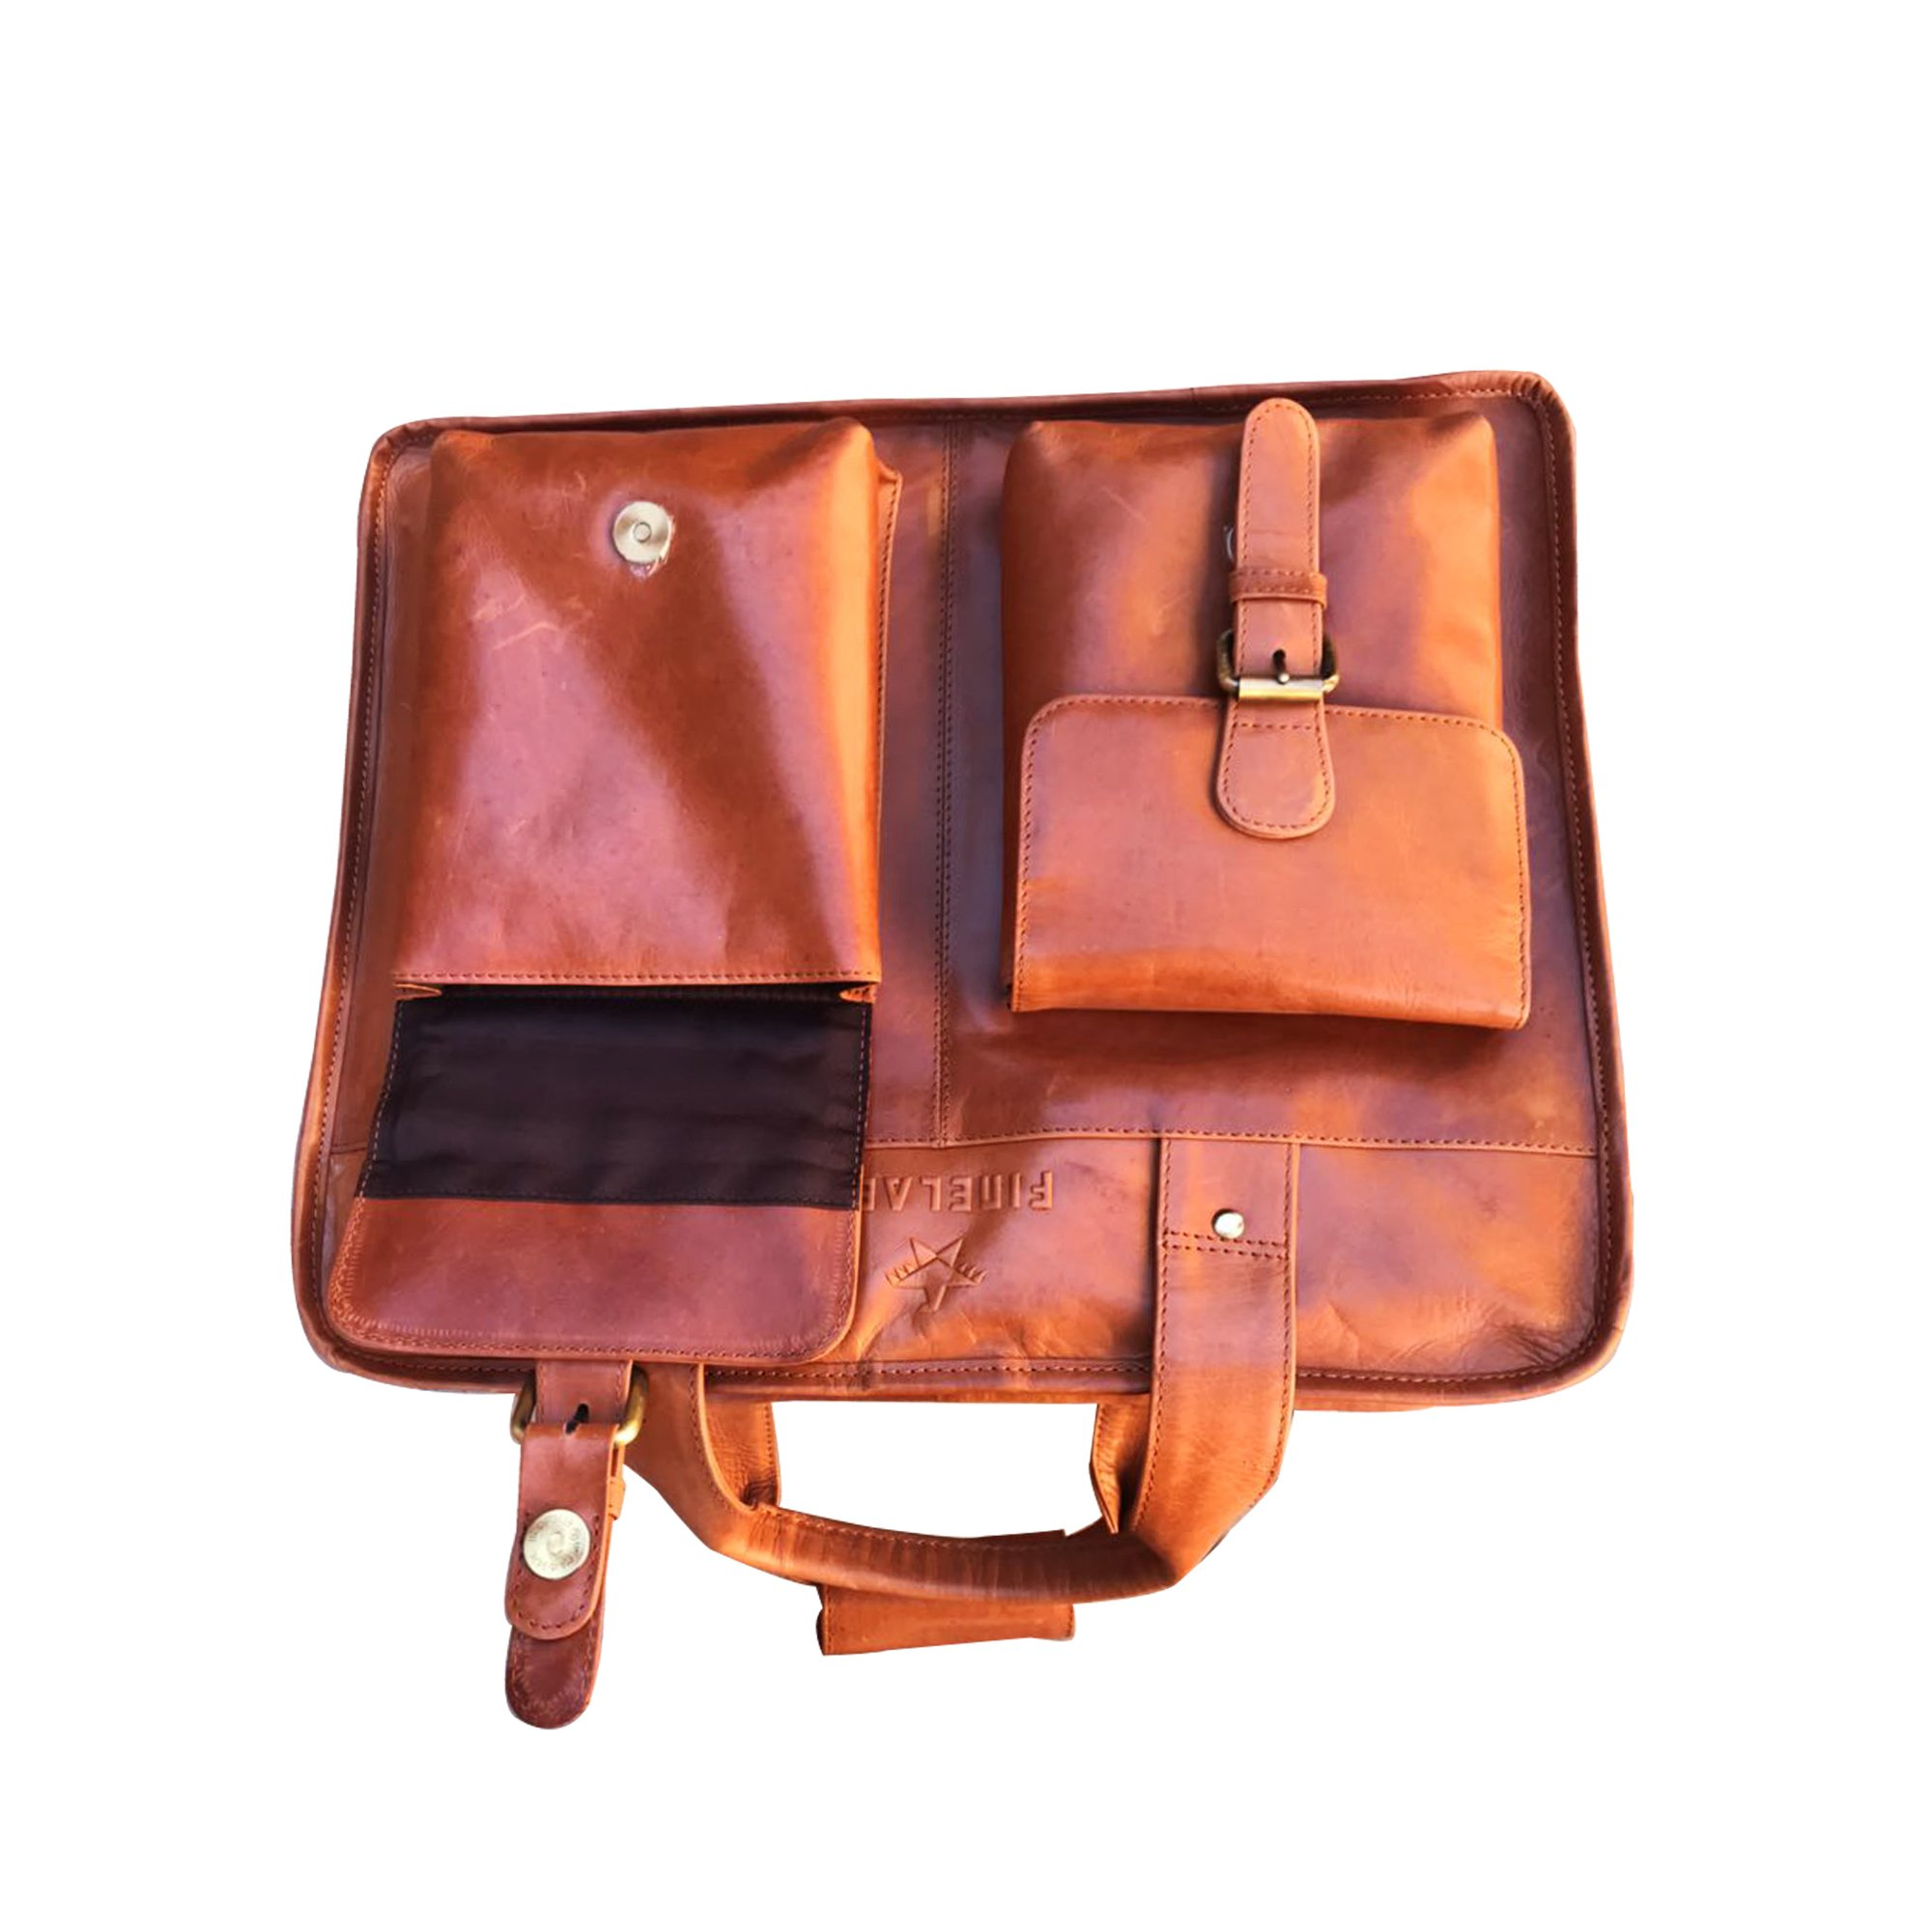 Finelaer Leather Laptop Computer Messenger Bag with Pockets for laptops Macbooks 14'' Brown by FINELAER (Image #4)